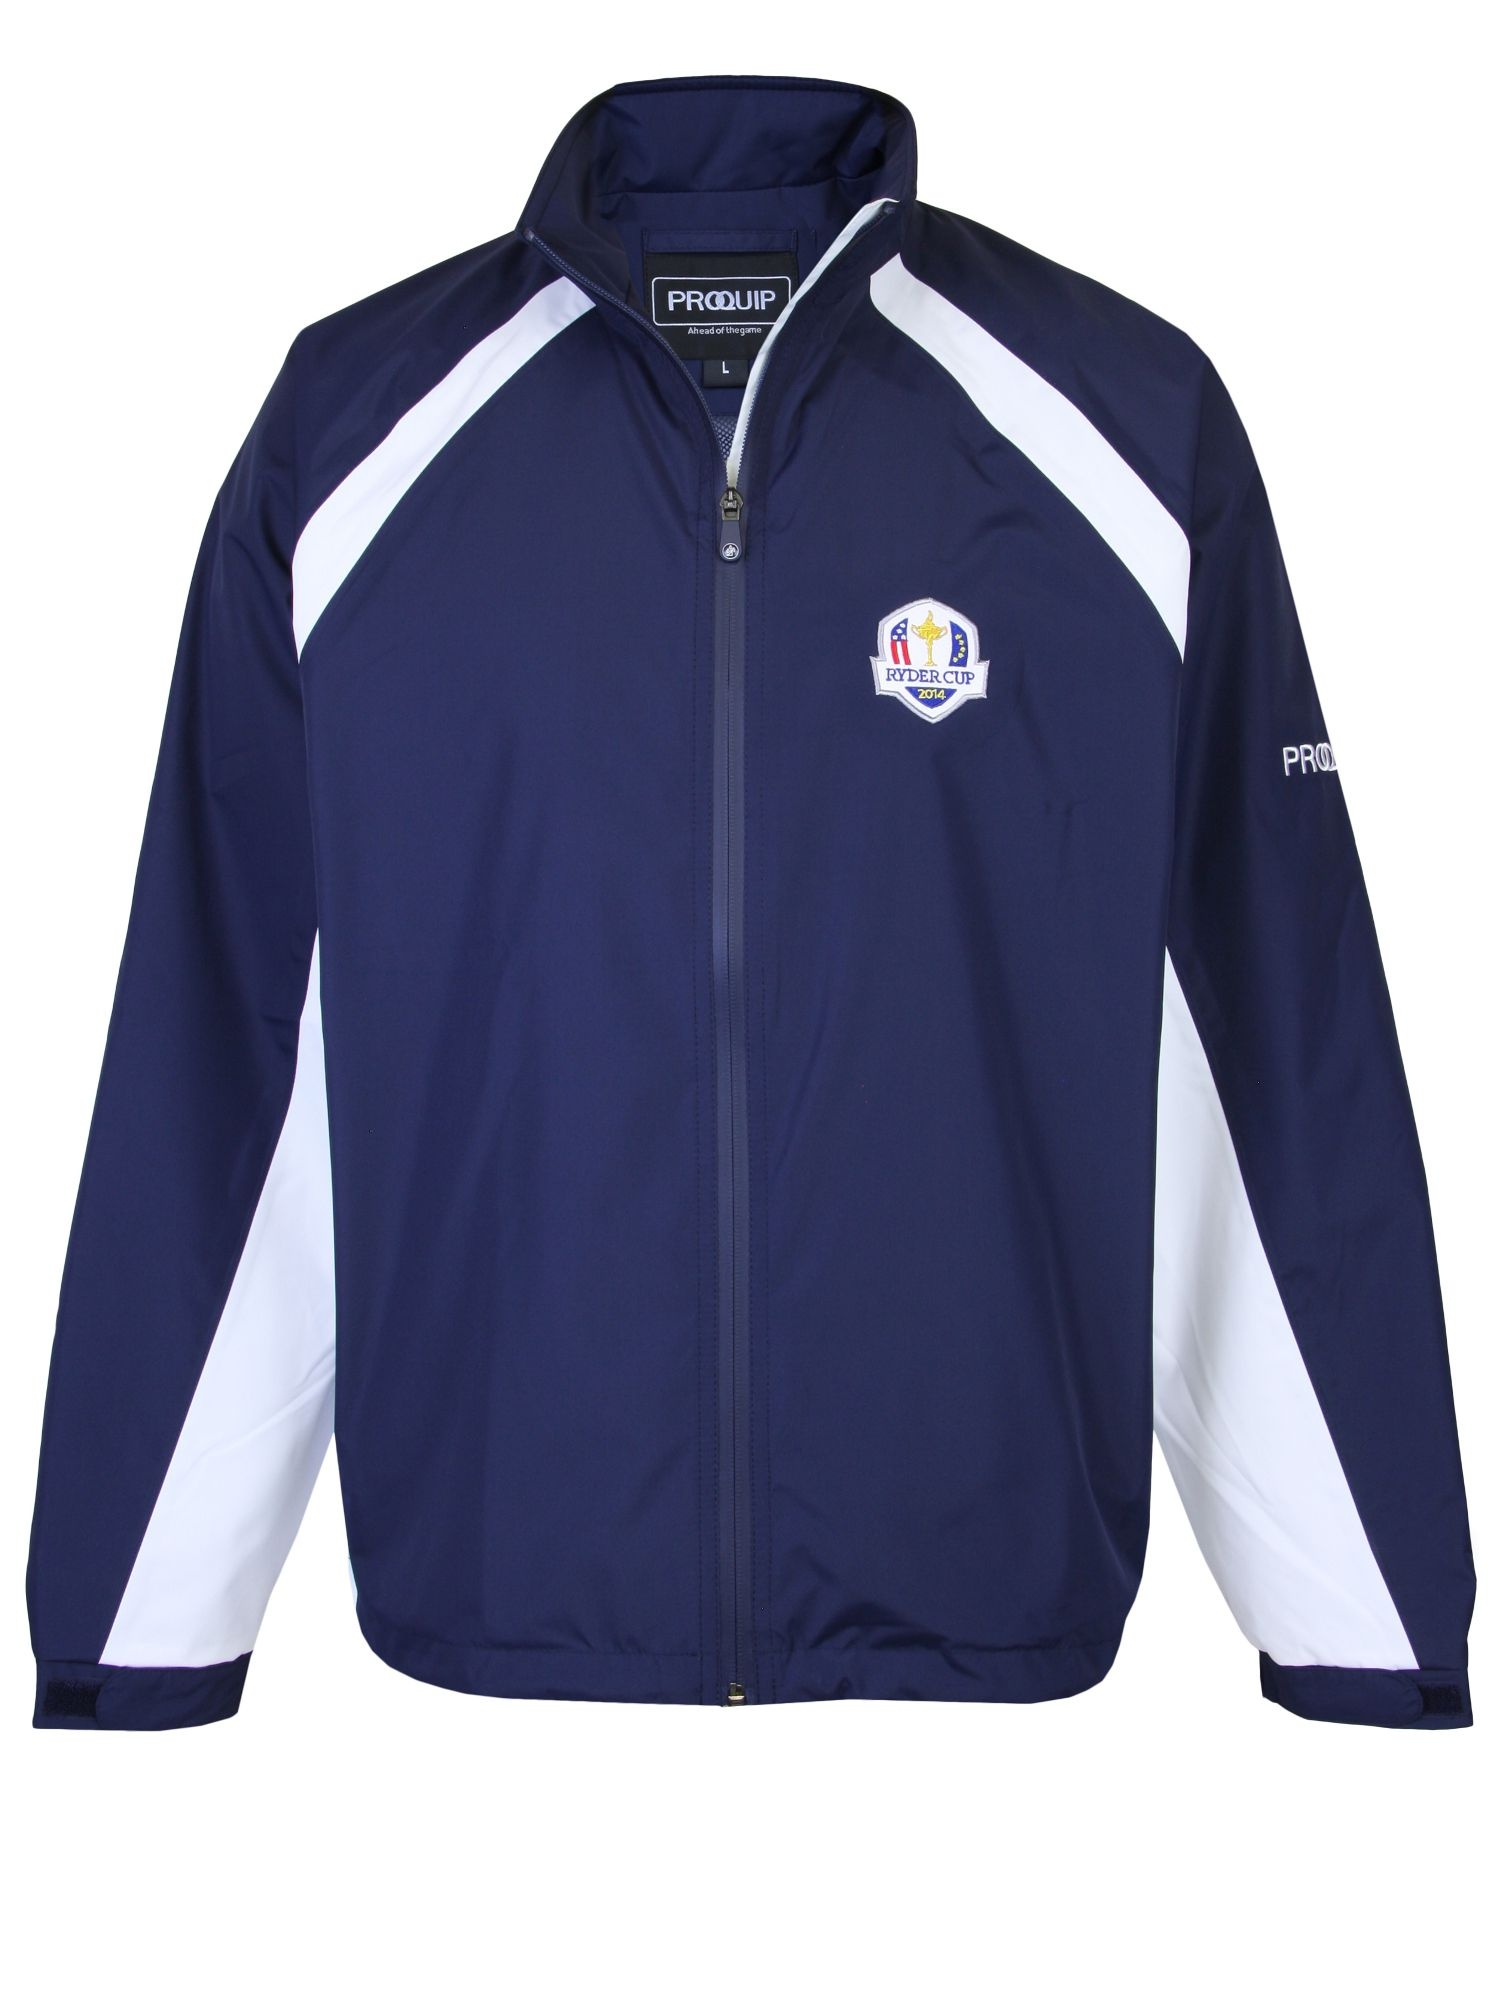 Ryder Cup 2014 waterproof jacket